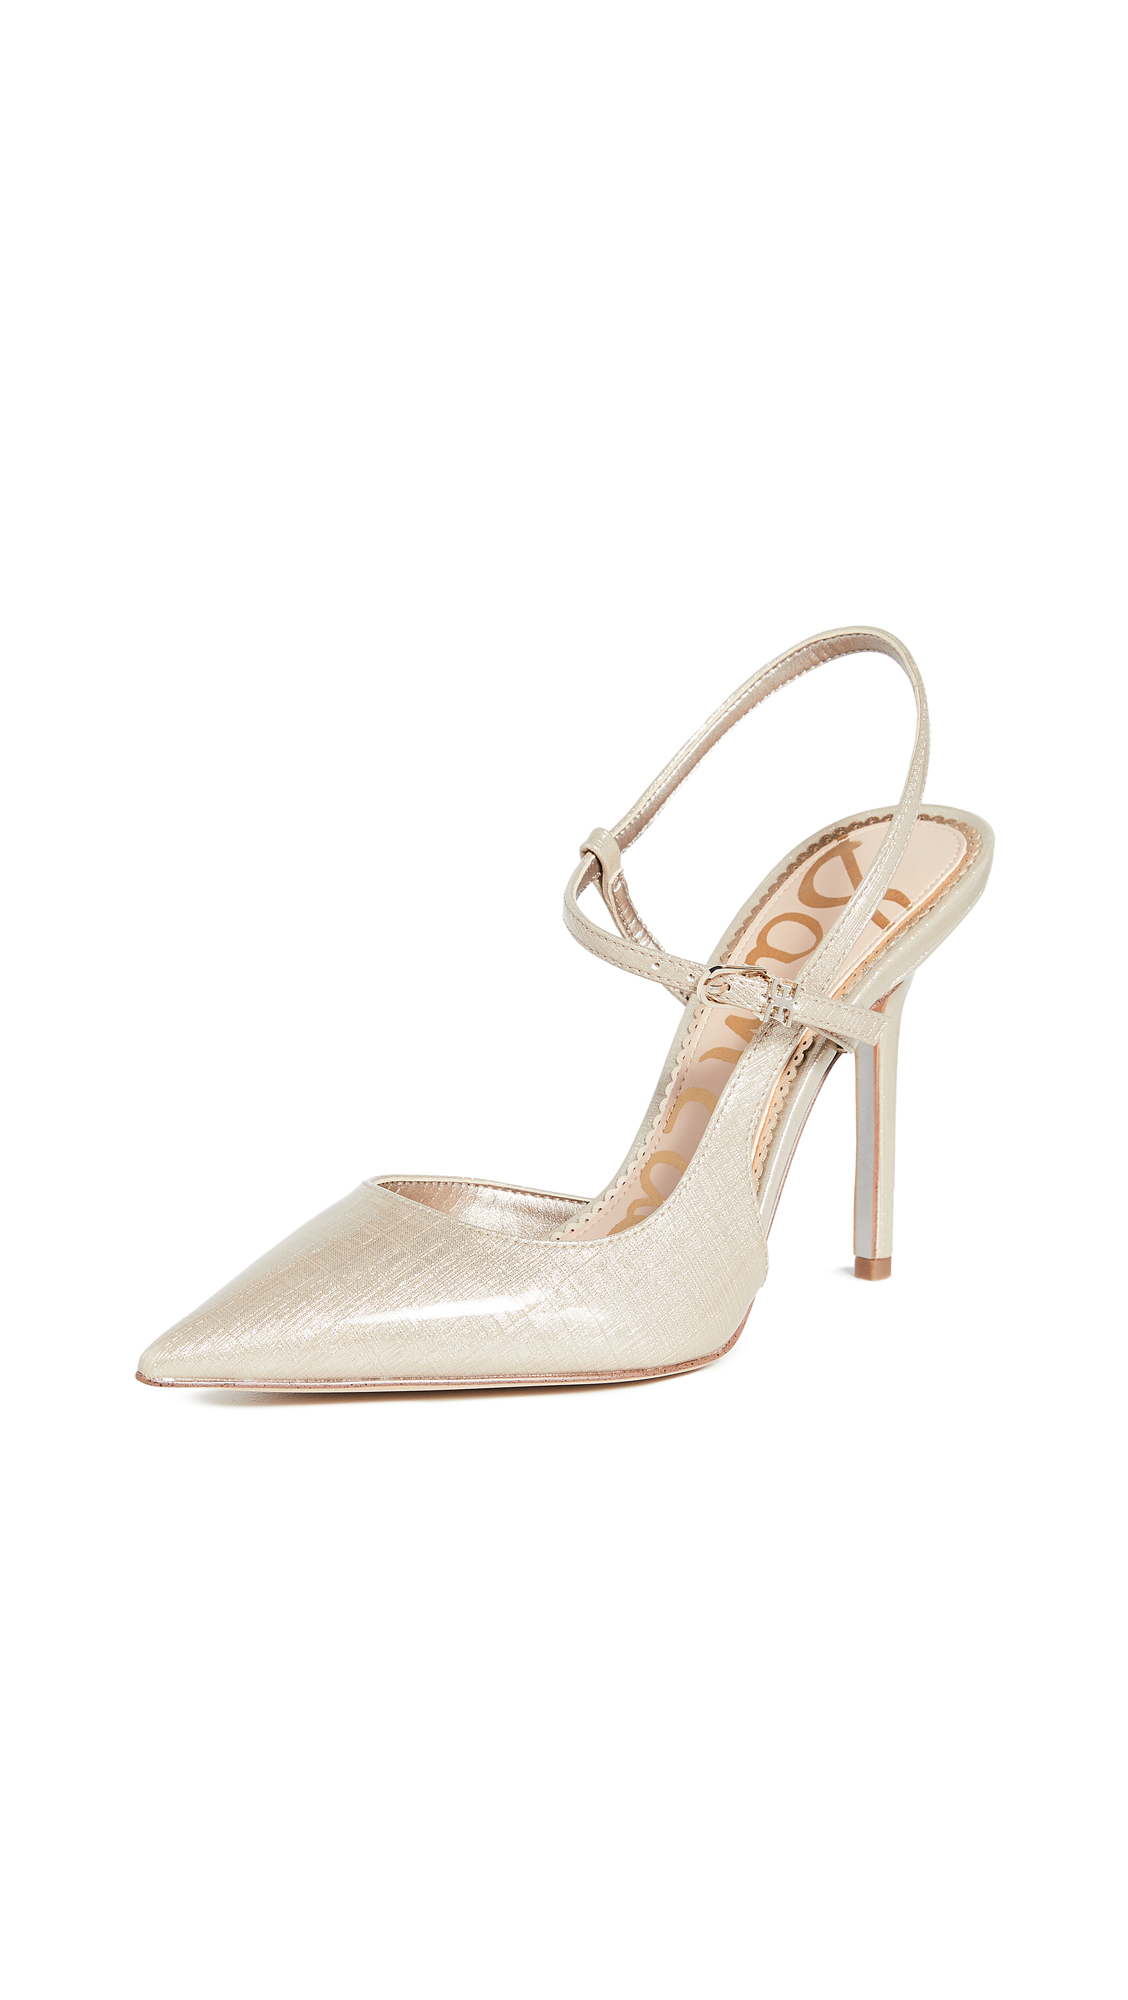 Sam Edelman Ayla Pumps - 25% Off Sale